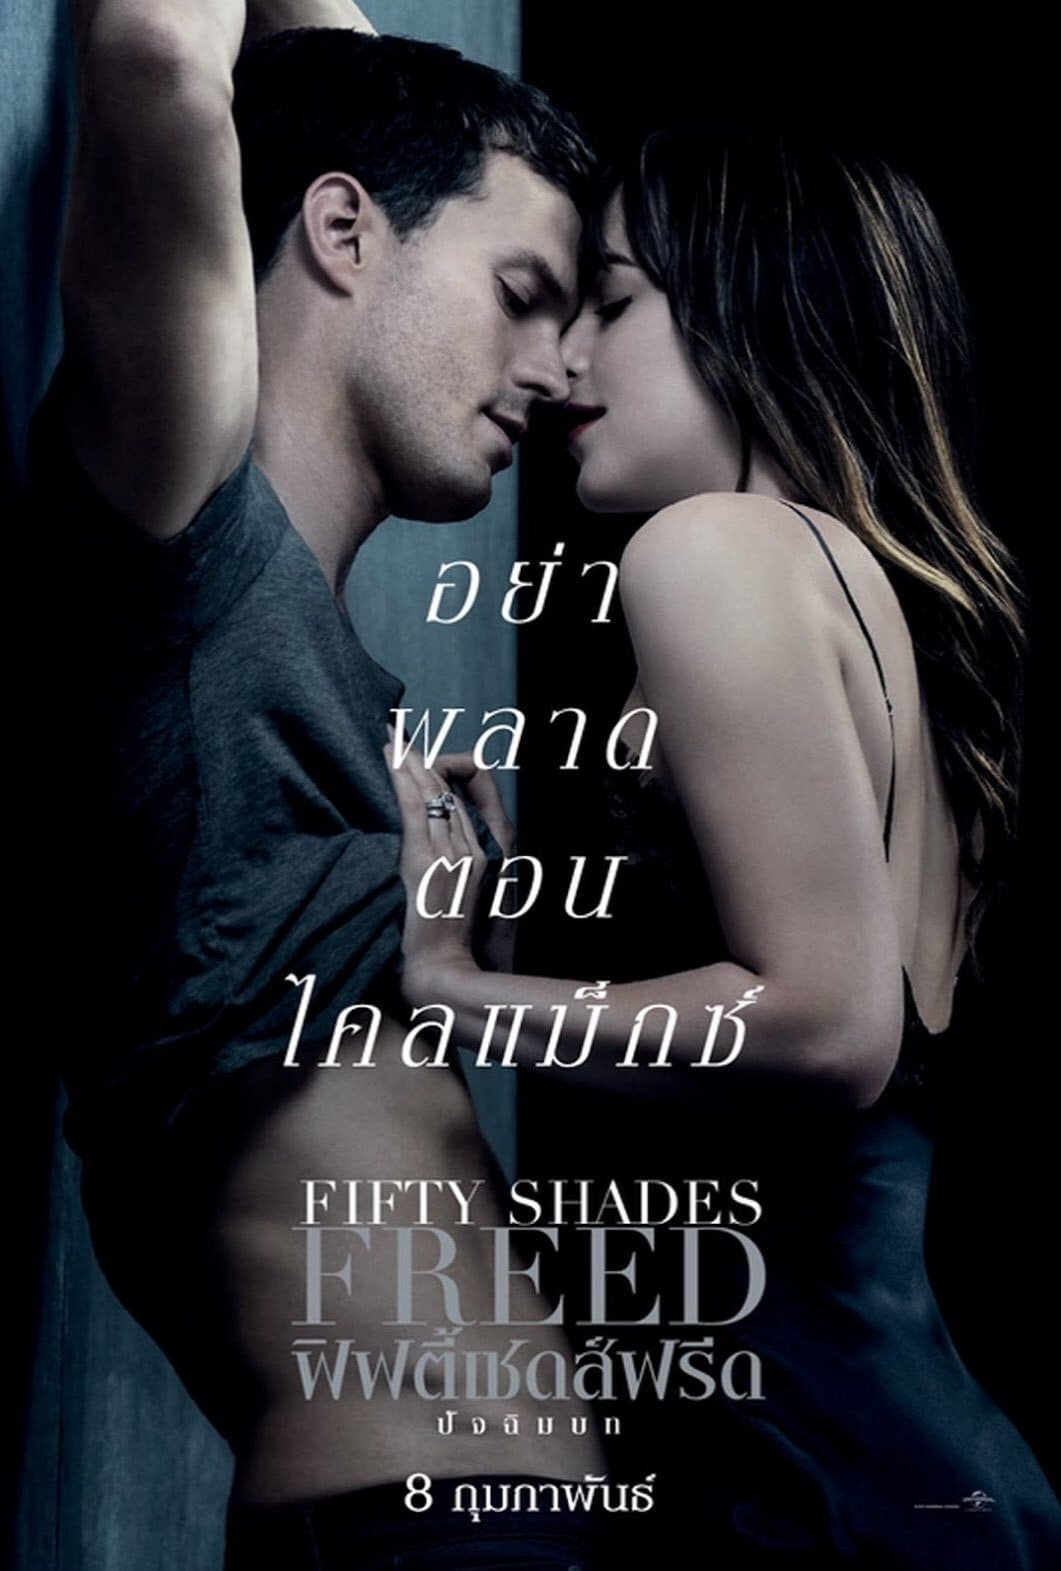 Fifty shades freed film gratis